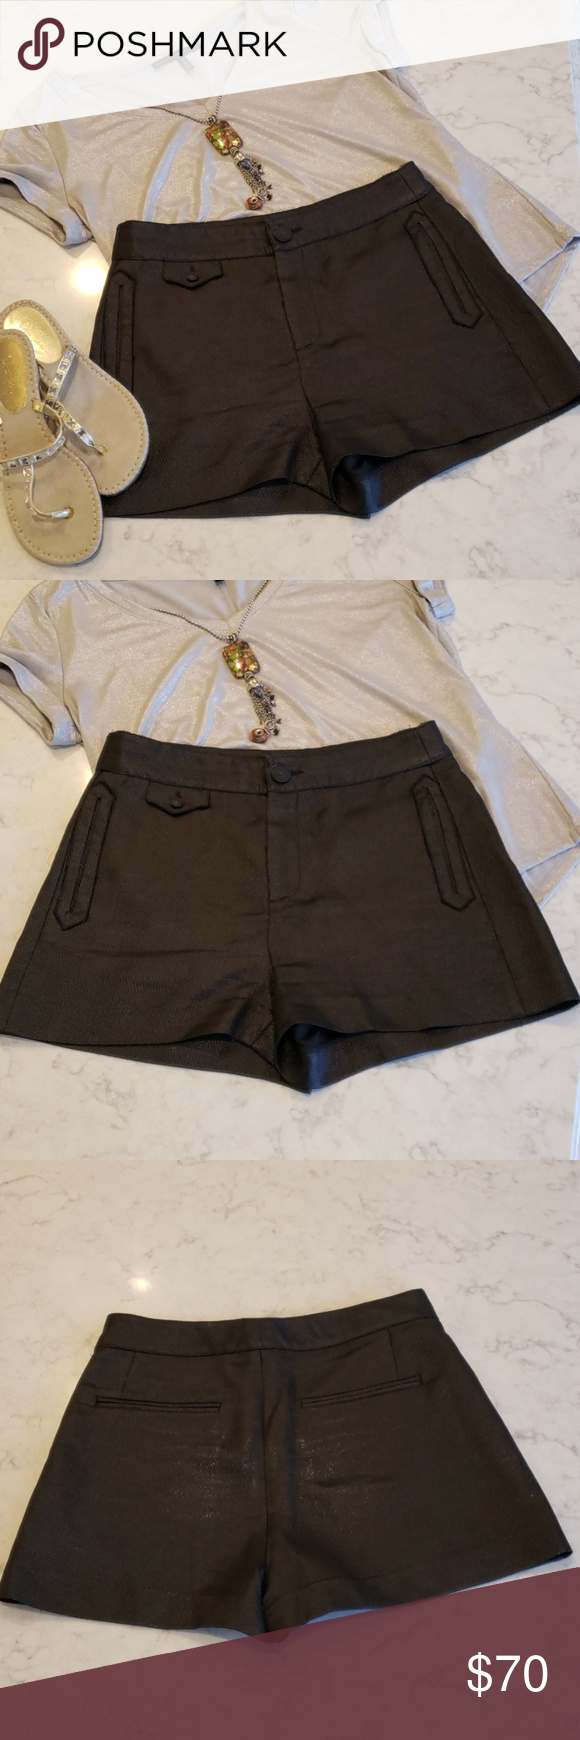 Rag Bone Metallic Black Dress Shorts Absolutely Gorgeous Not Sure These Have Been Worn All Pockets Still Sewn S Fashion Clothes Design Black Short Dress [ 1740 x 580 Pixel ]